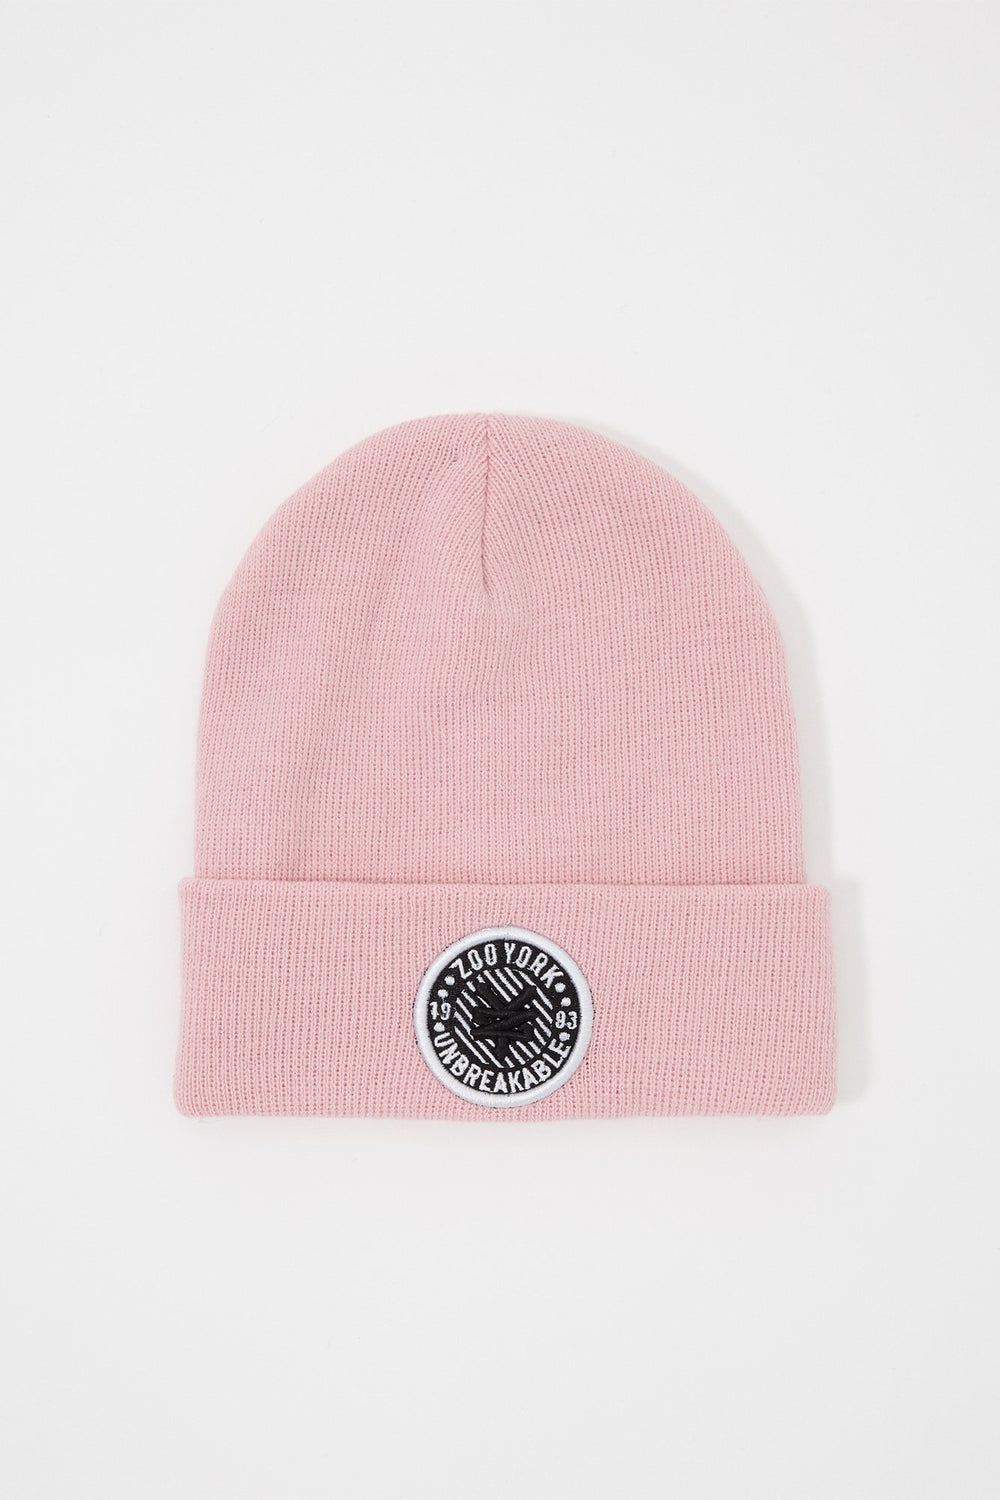 Zoo York Unbreakable Boys Beanie Pink